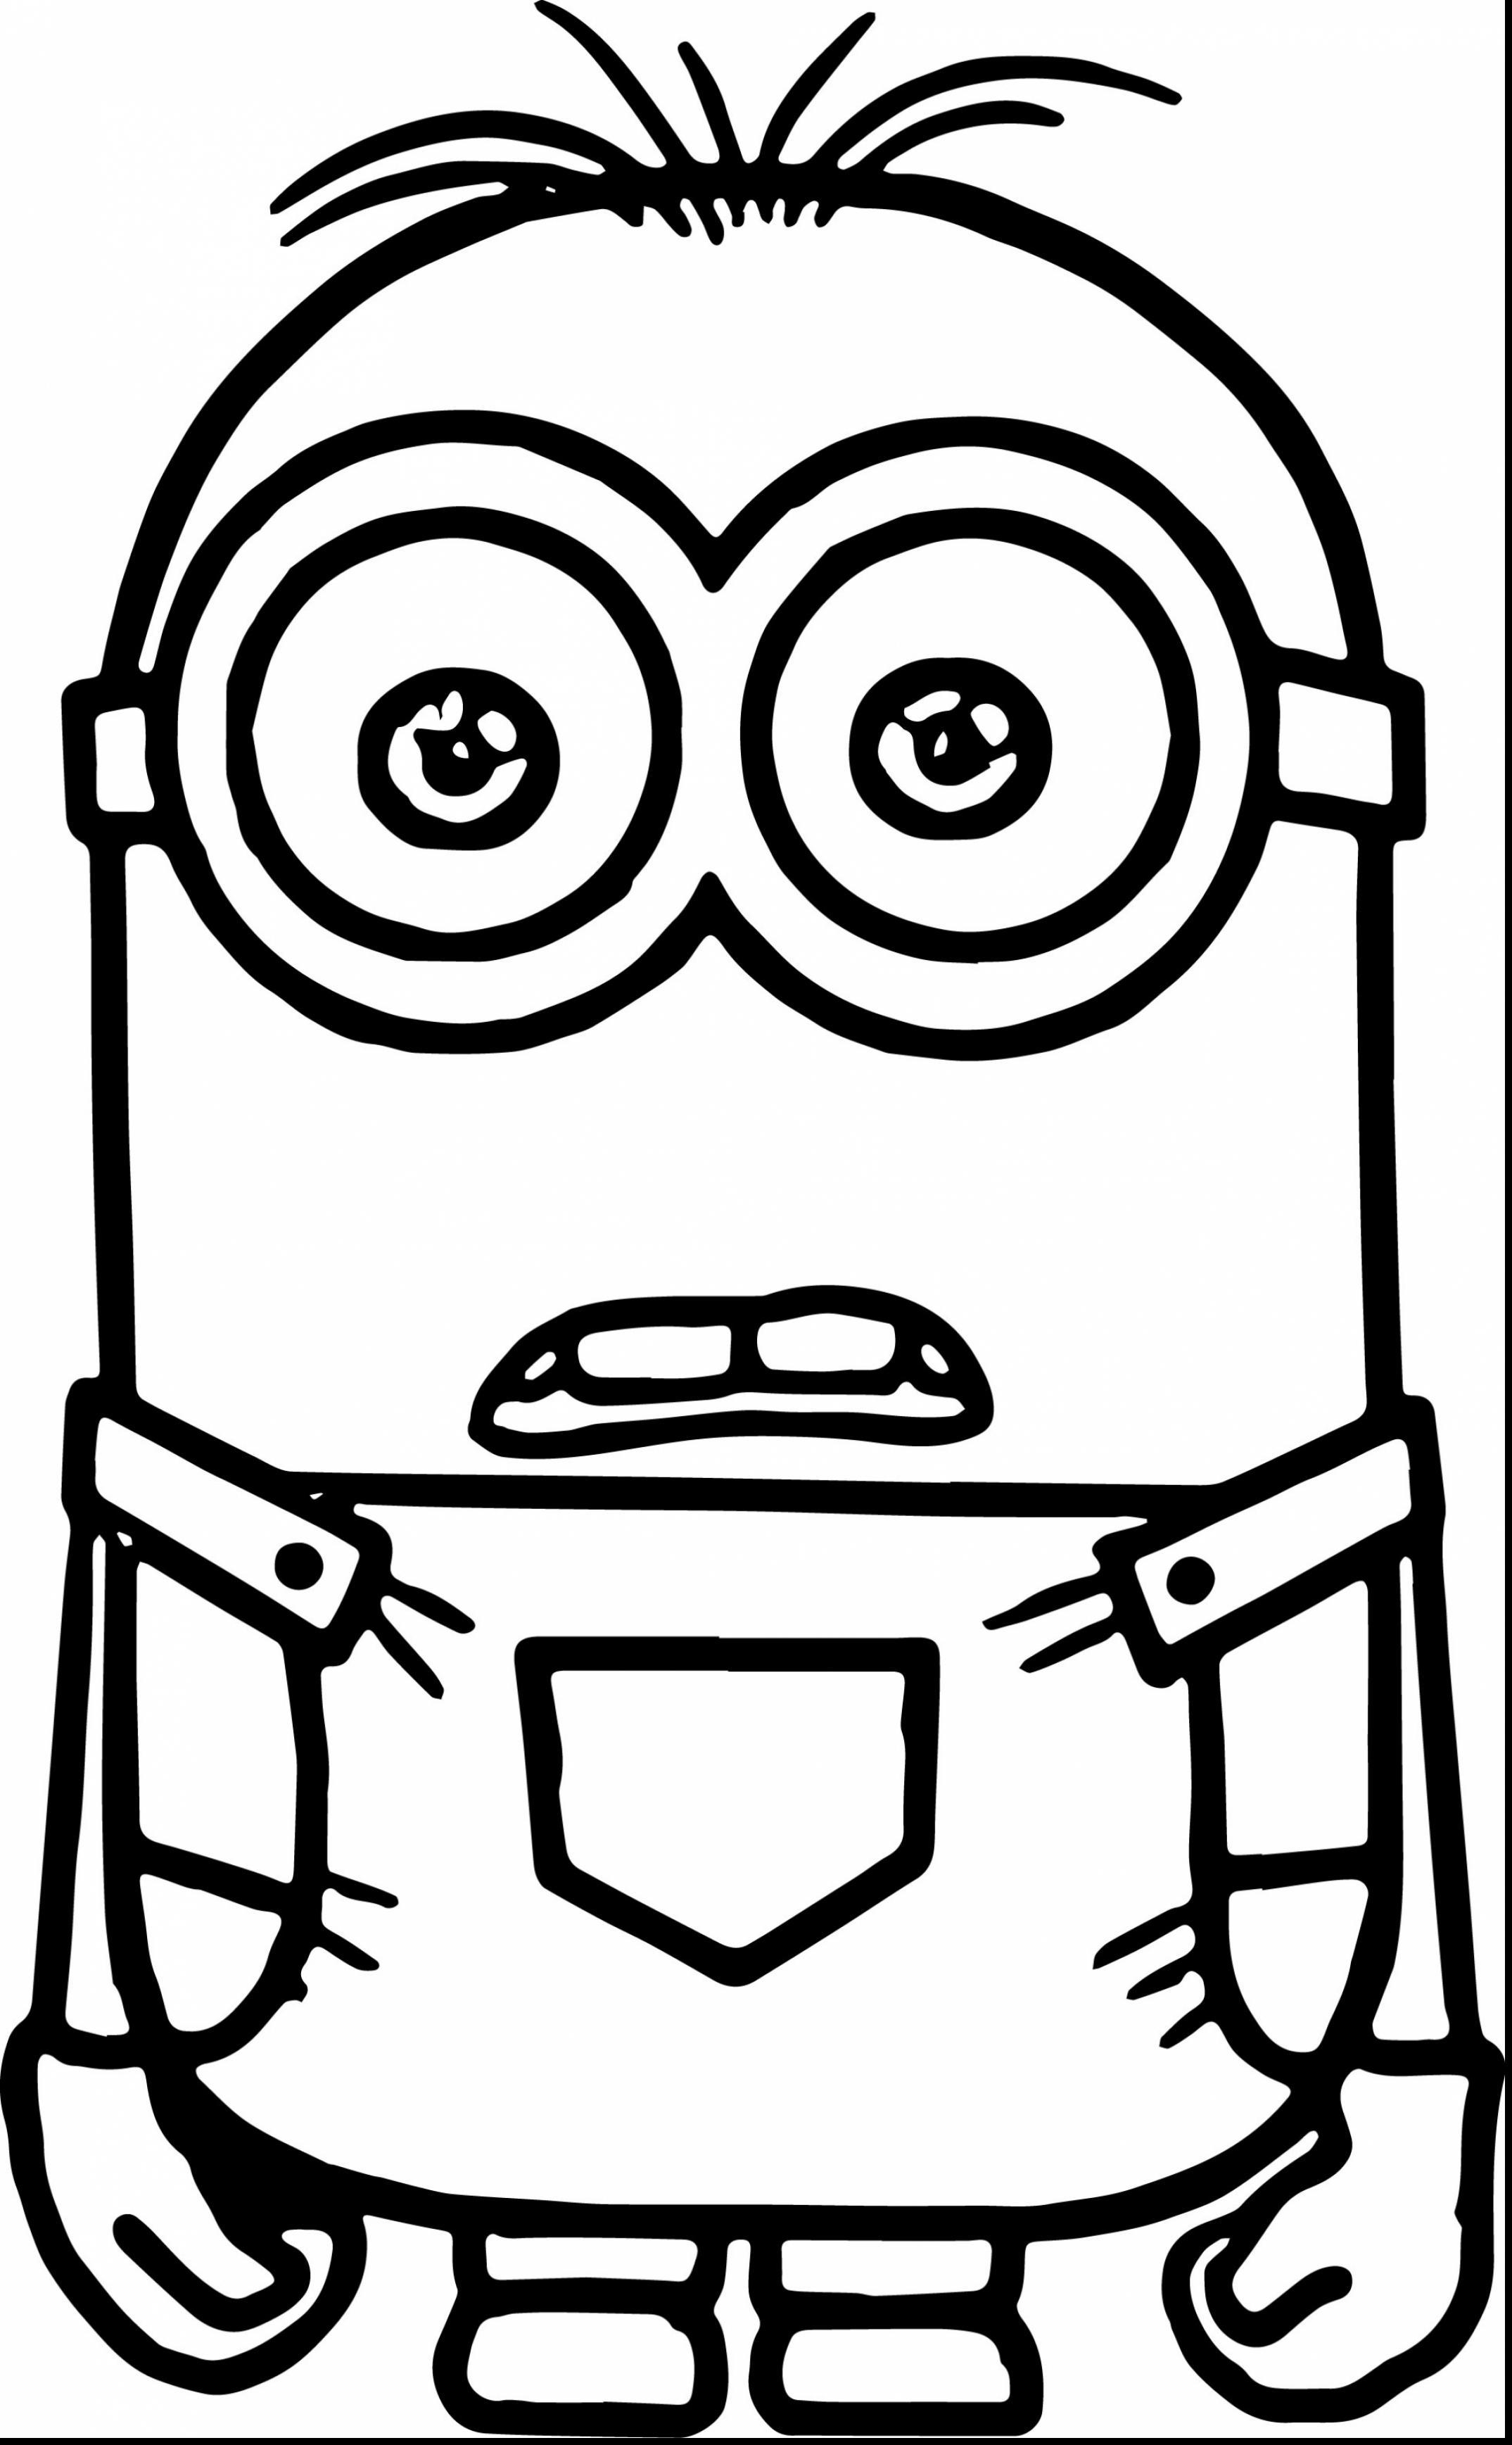 2149x3474 Stunning Wear Your Own Coloring Page Kids Online And Image